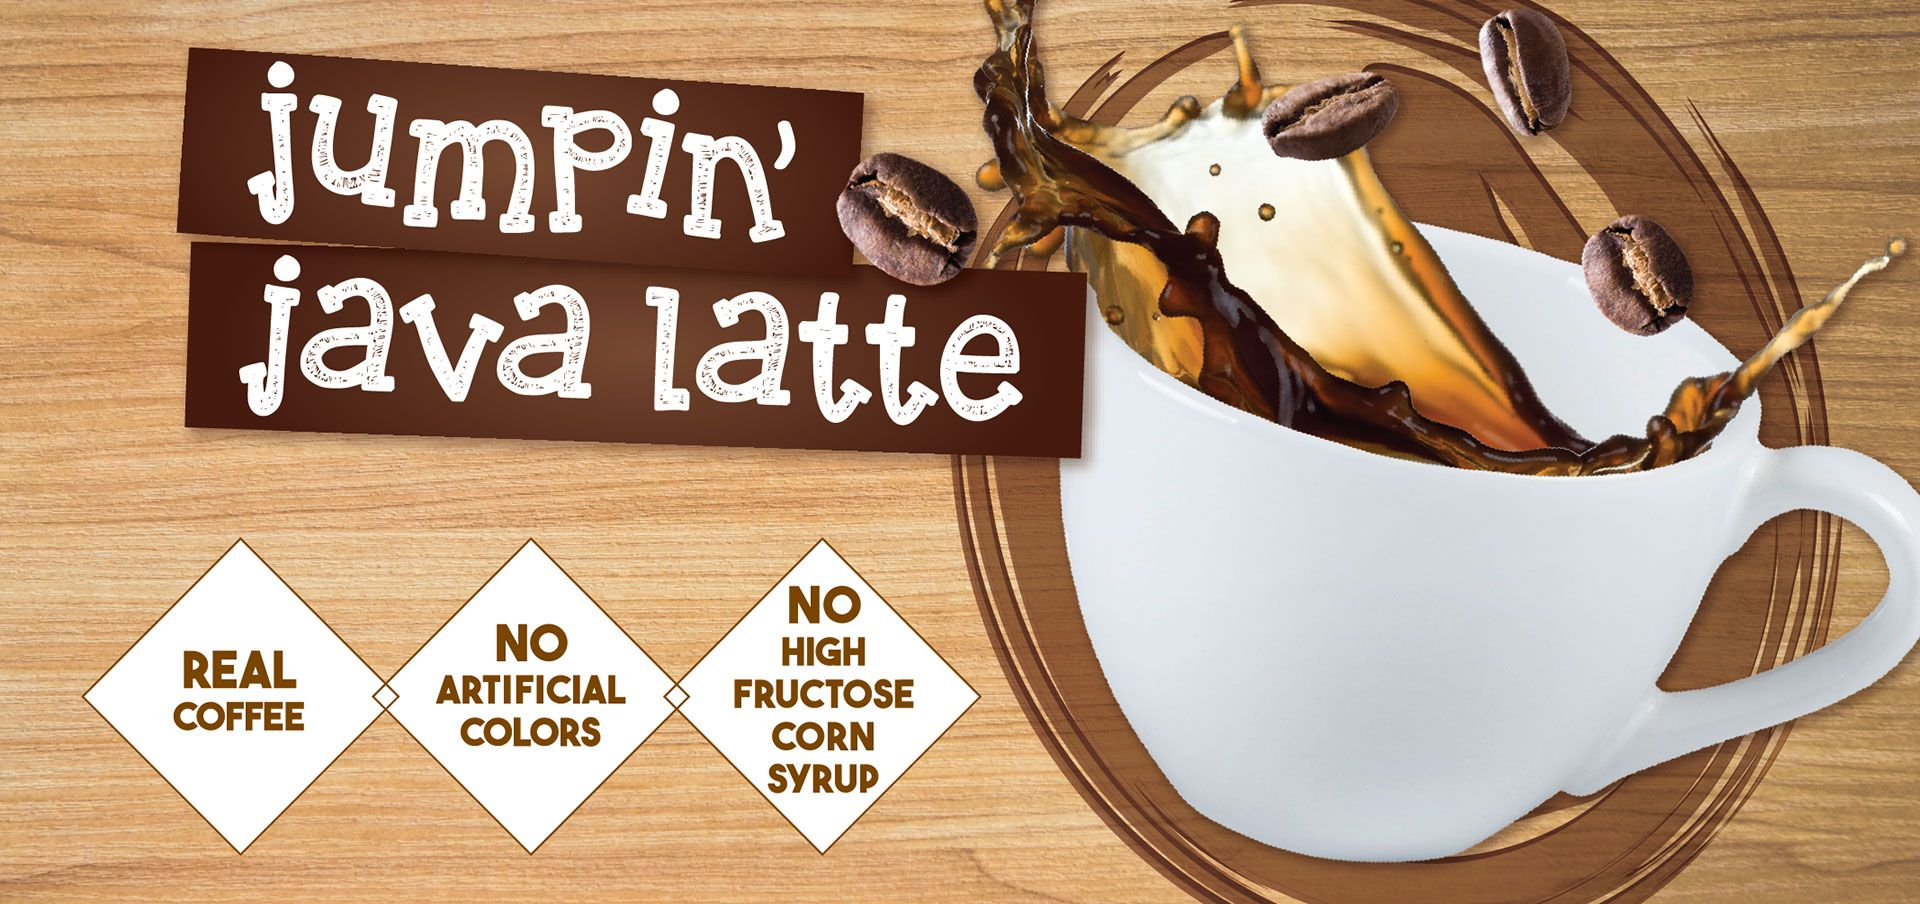 jumpin' java latte label image